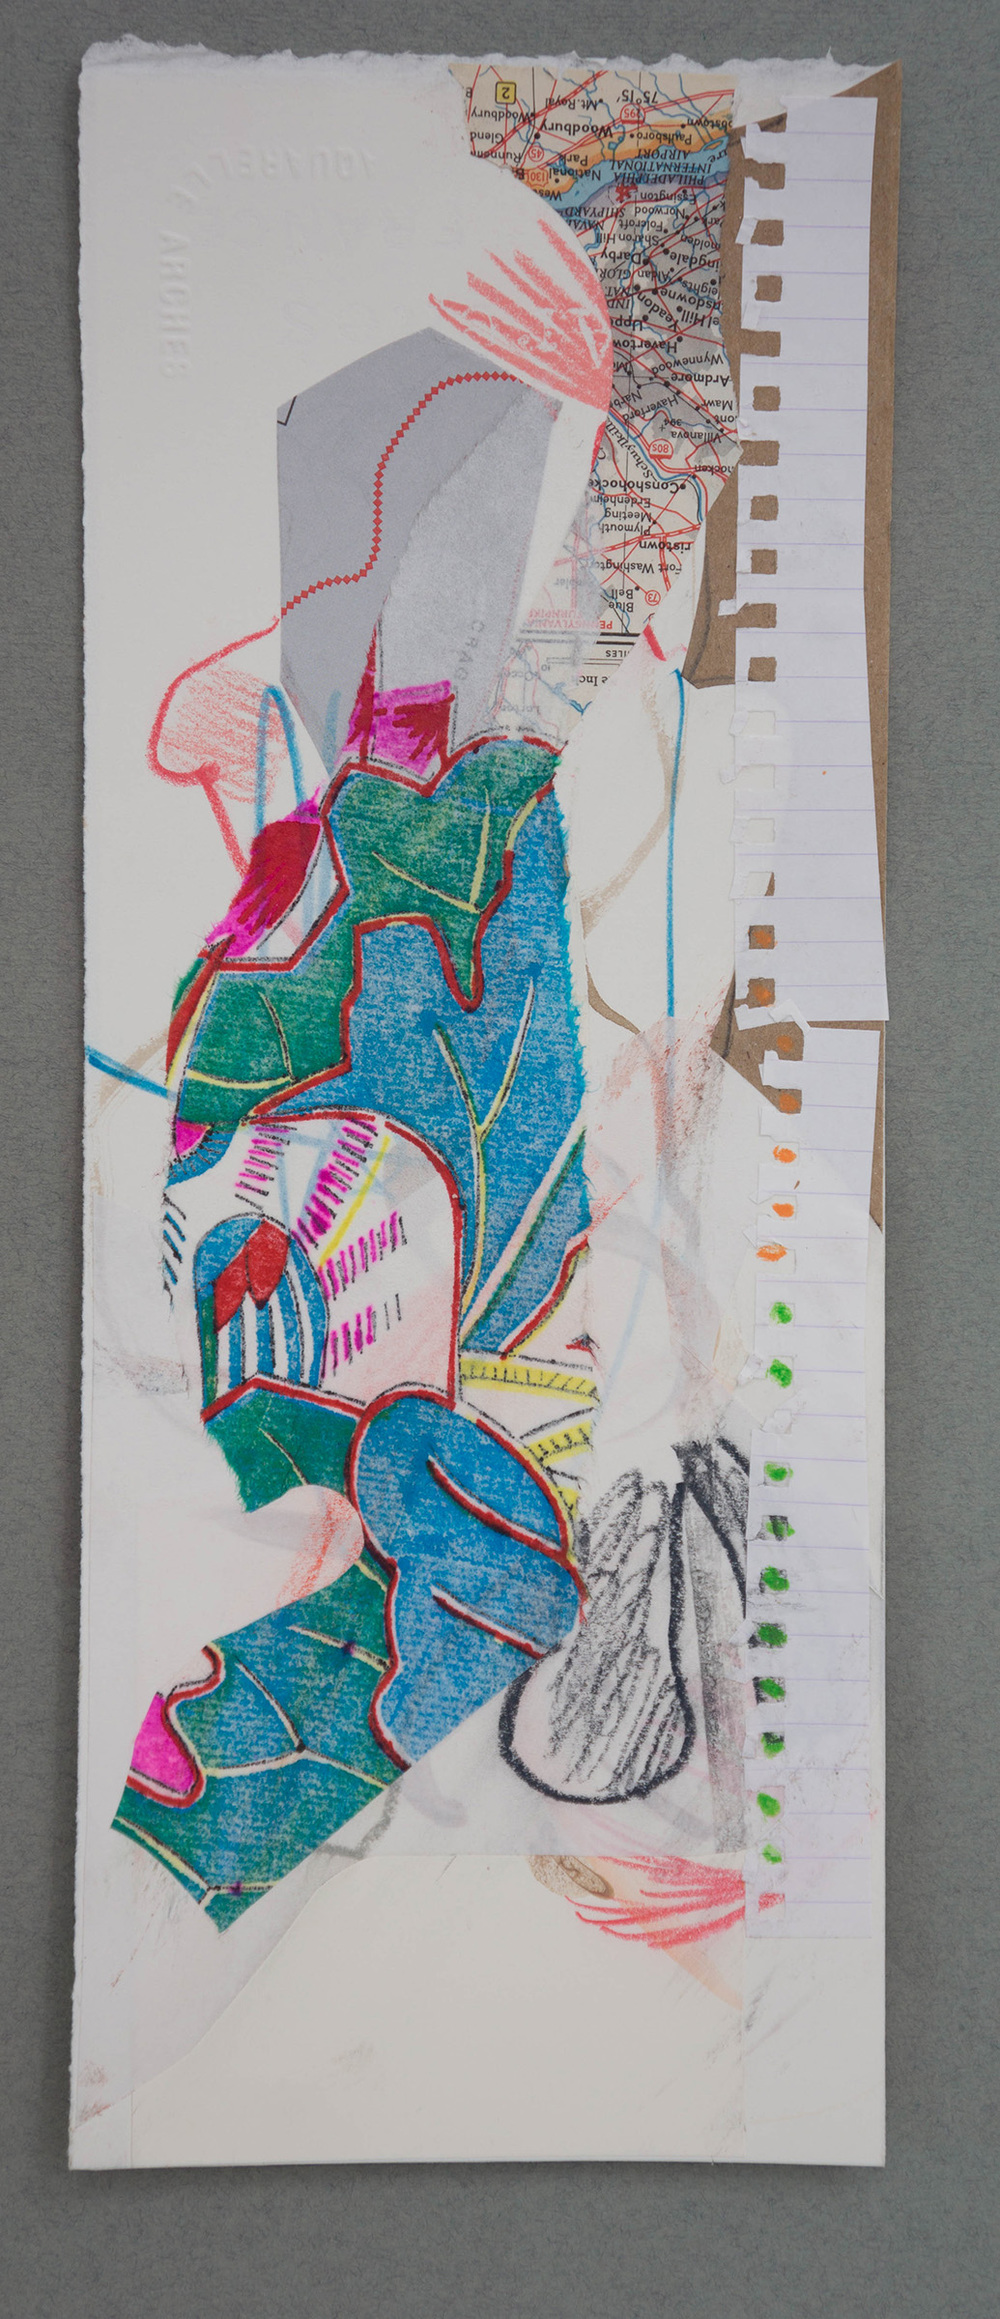 6/21/15 collage 1  stage 2  13x5""